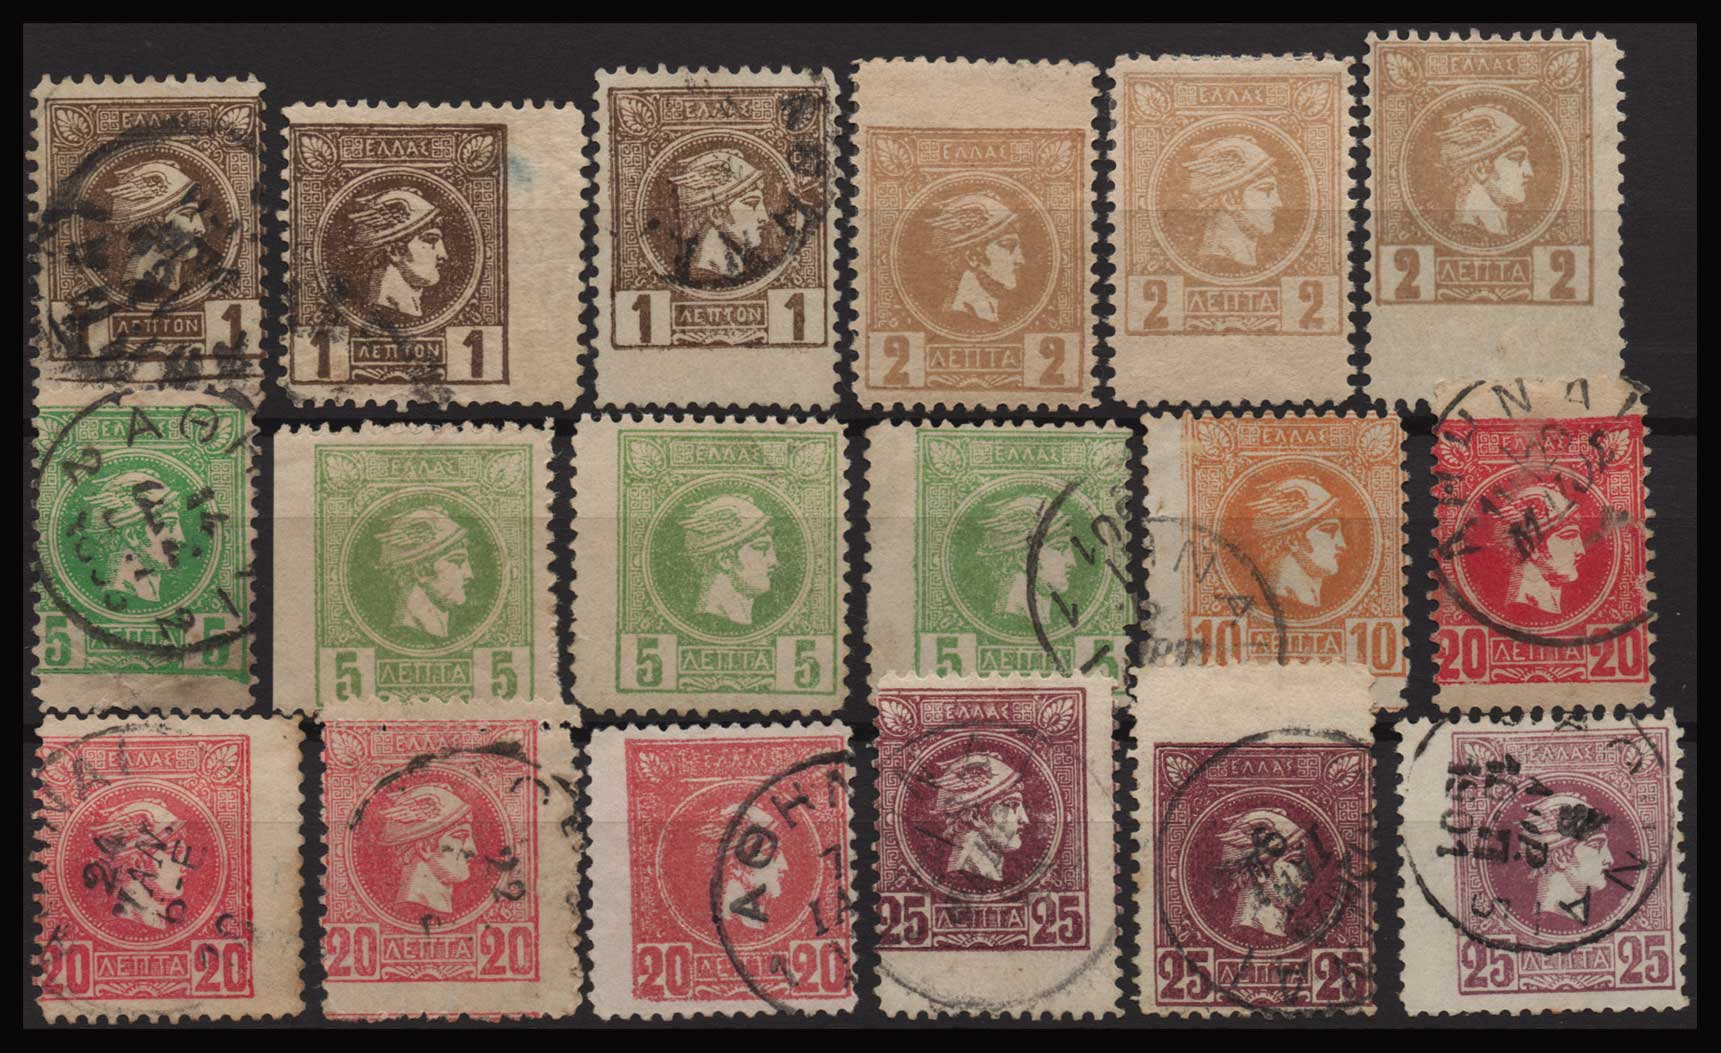 Lot 346 - -  SMALL HERMES HEAD small hermes head -  Athens Auctions Public Auction 92 General Stamp Sale